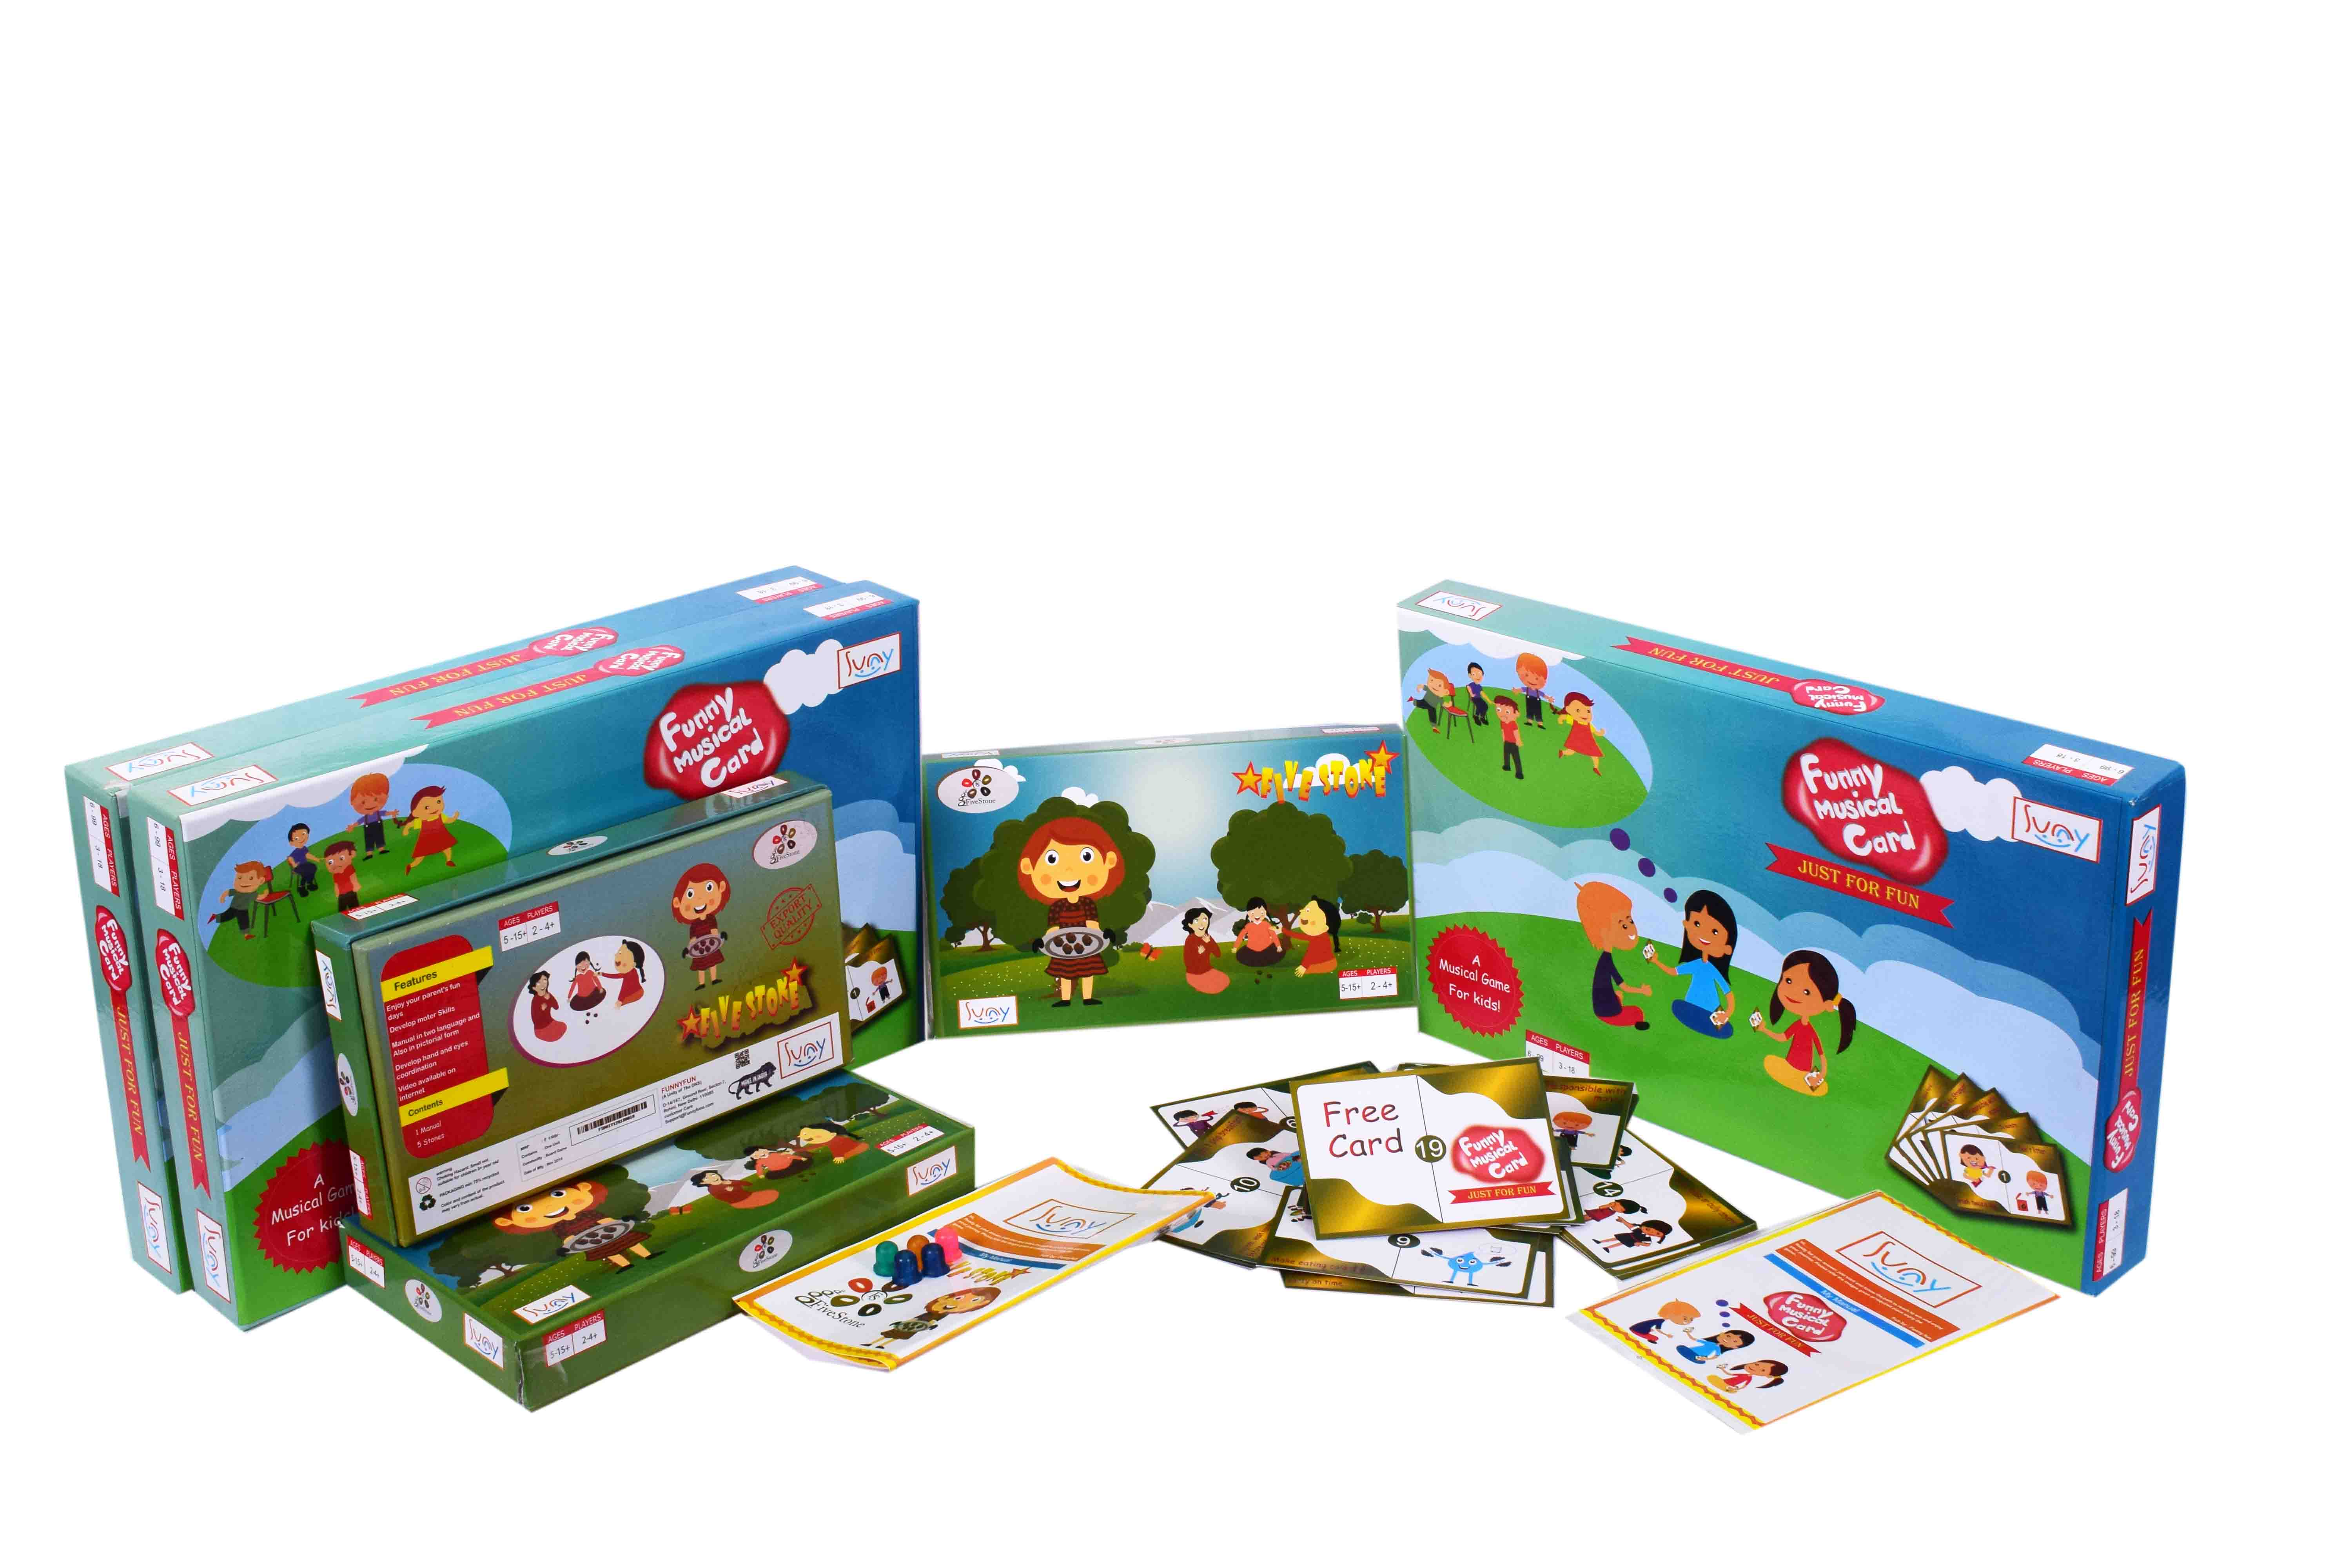 Funny Musical Card (Musical Chair) Family, Great Combo with 5 Stone Old  Ancient Indian, New Board Game Export Quality Travel & Party pack